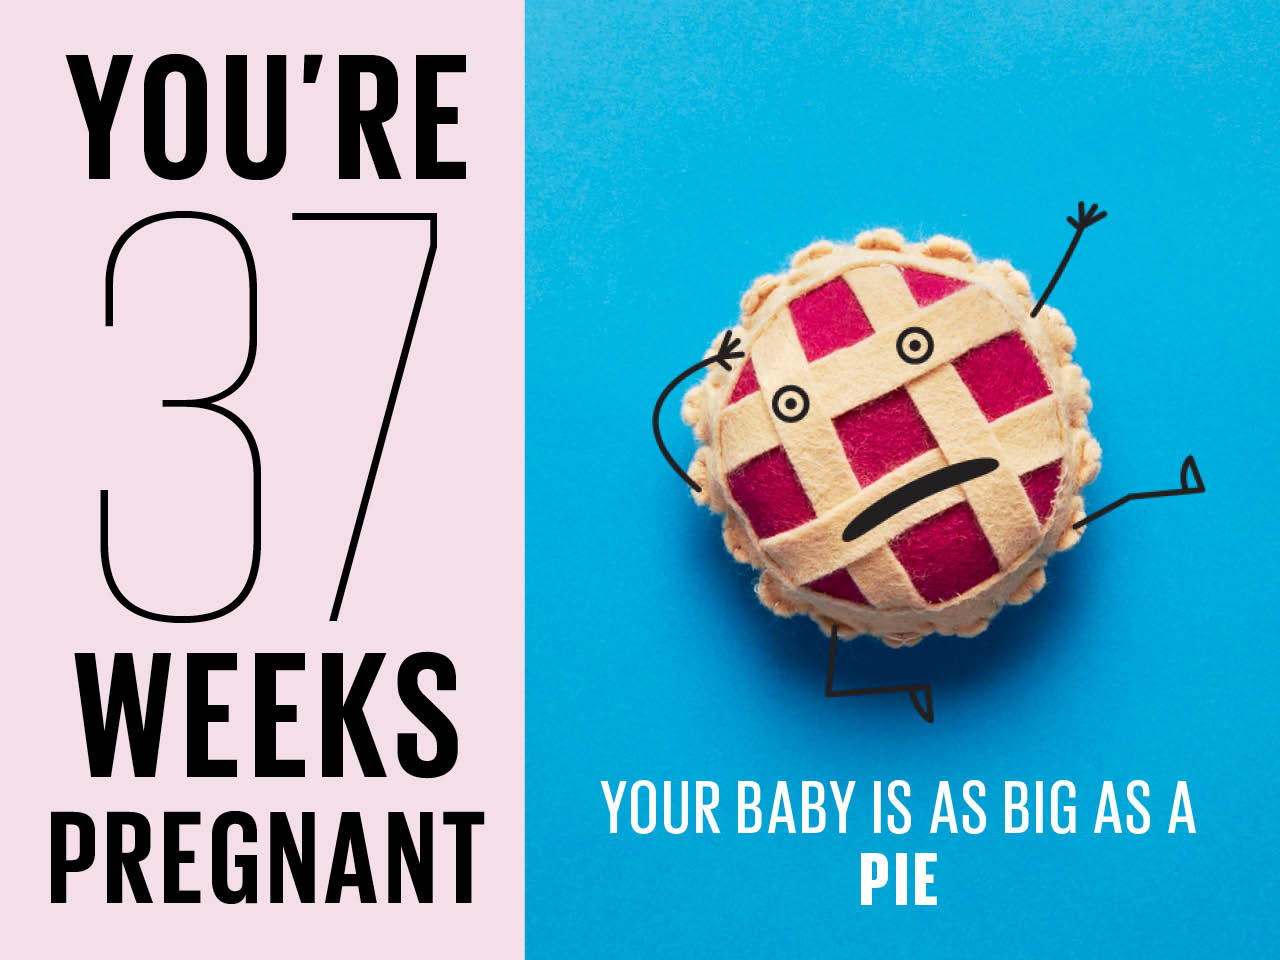 Felt pie used to show how big baby is at 37 weeks